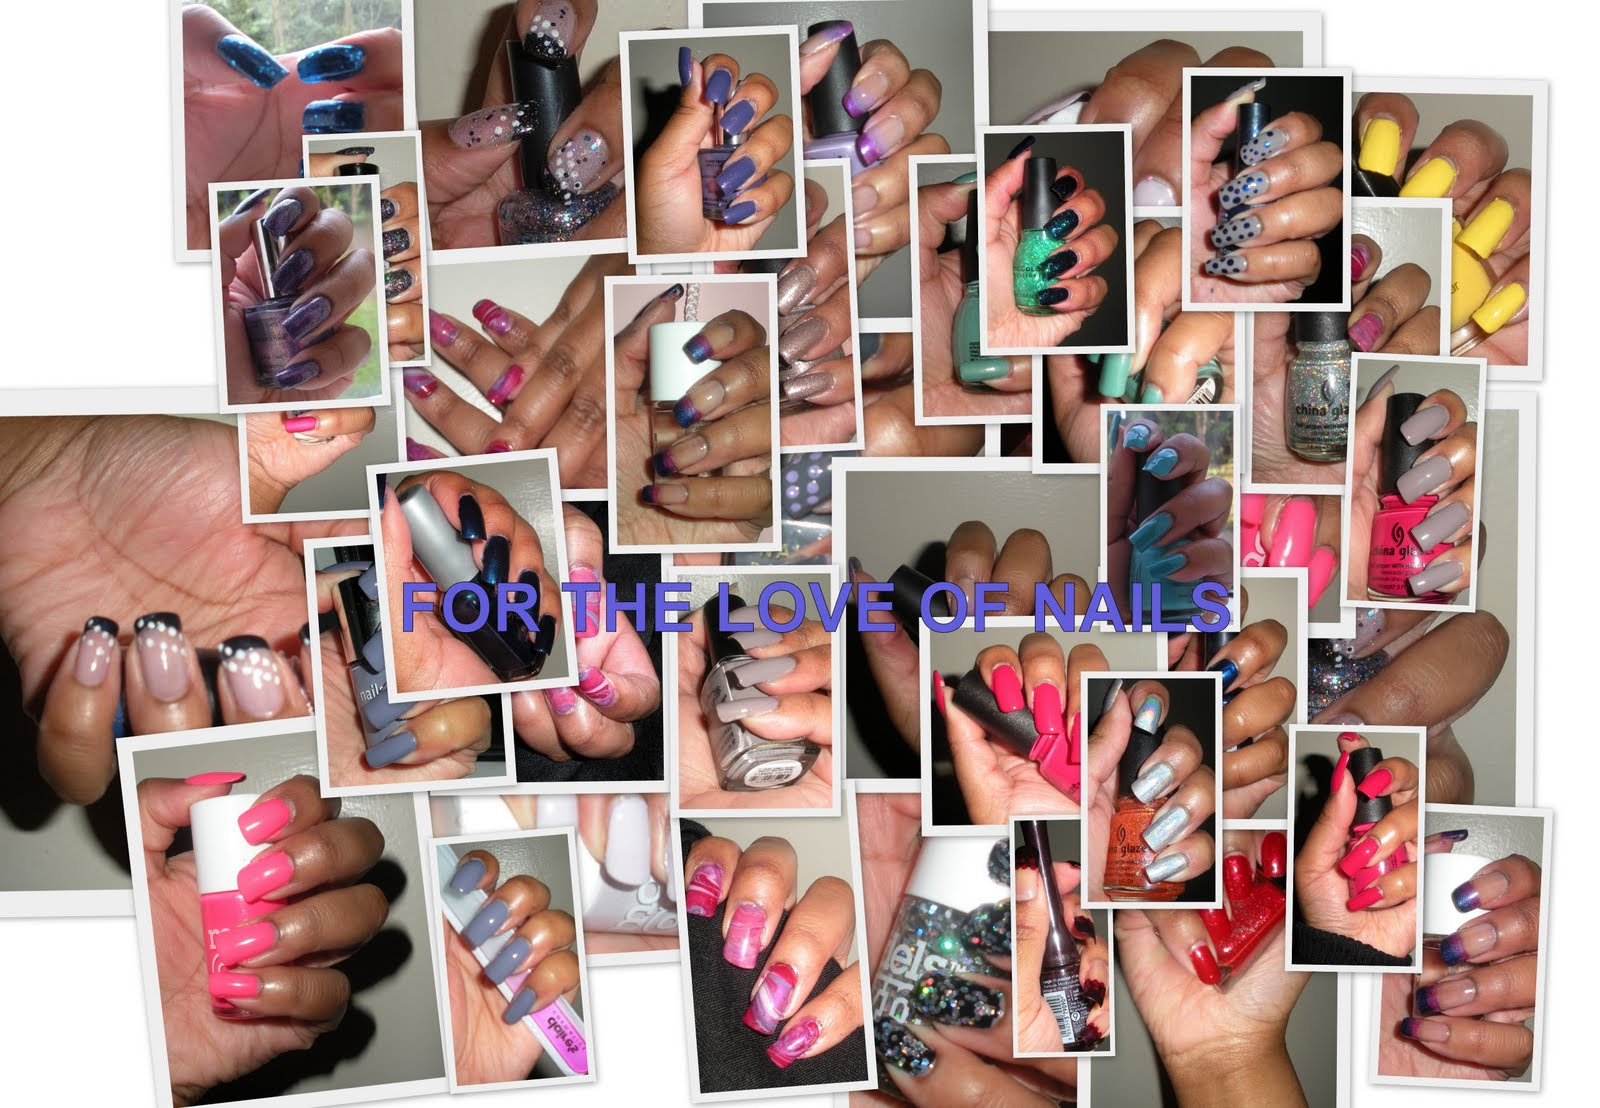 For the love of nails...